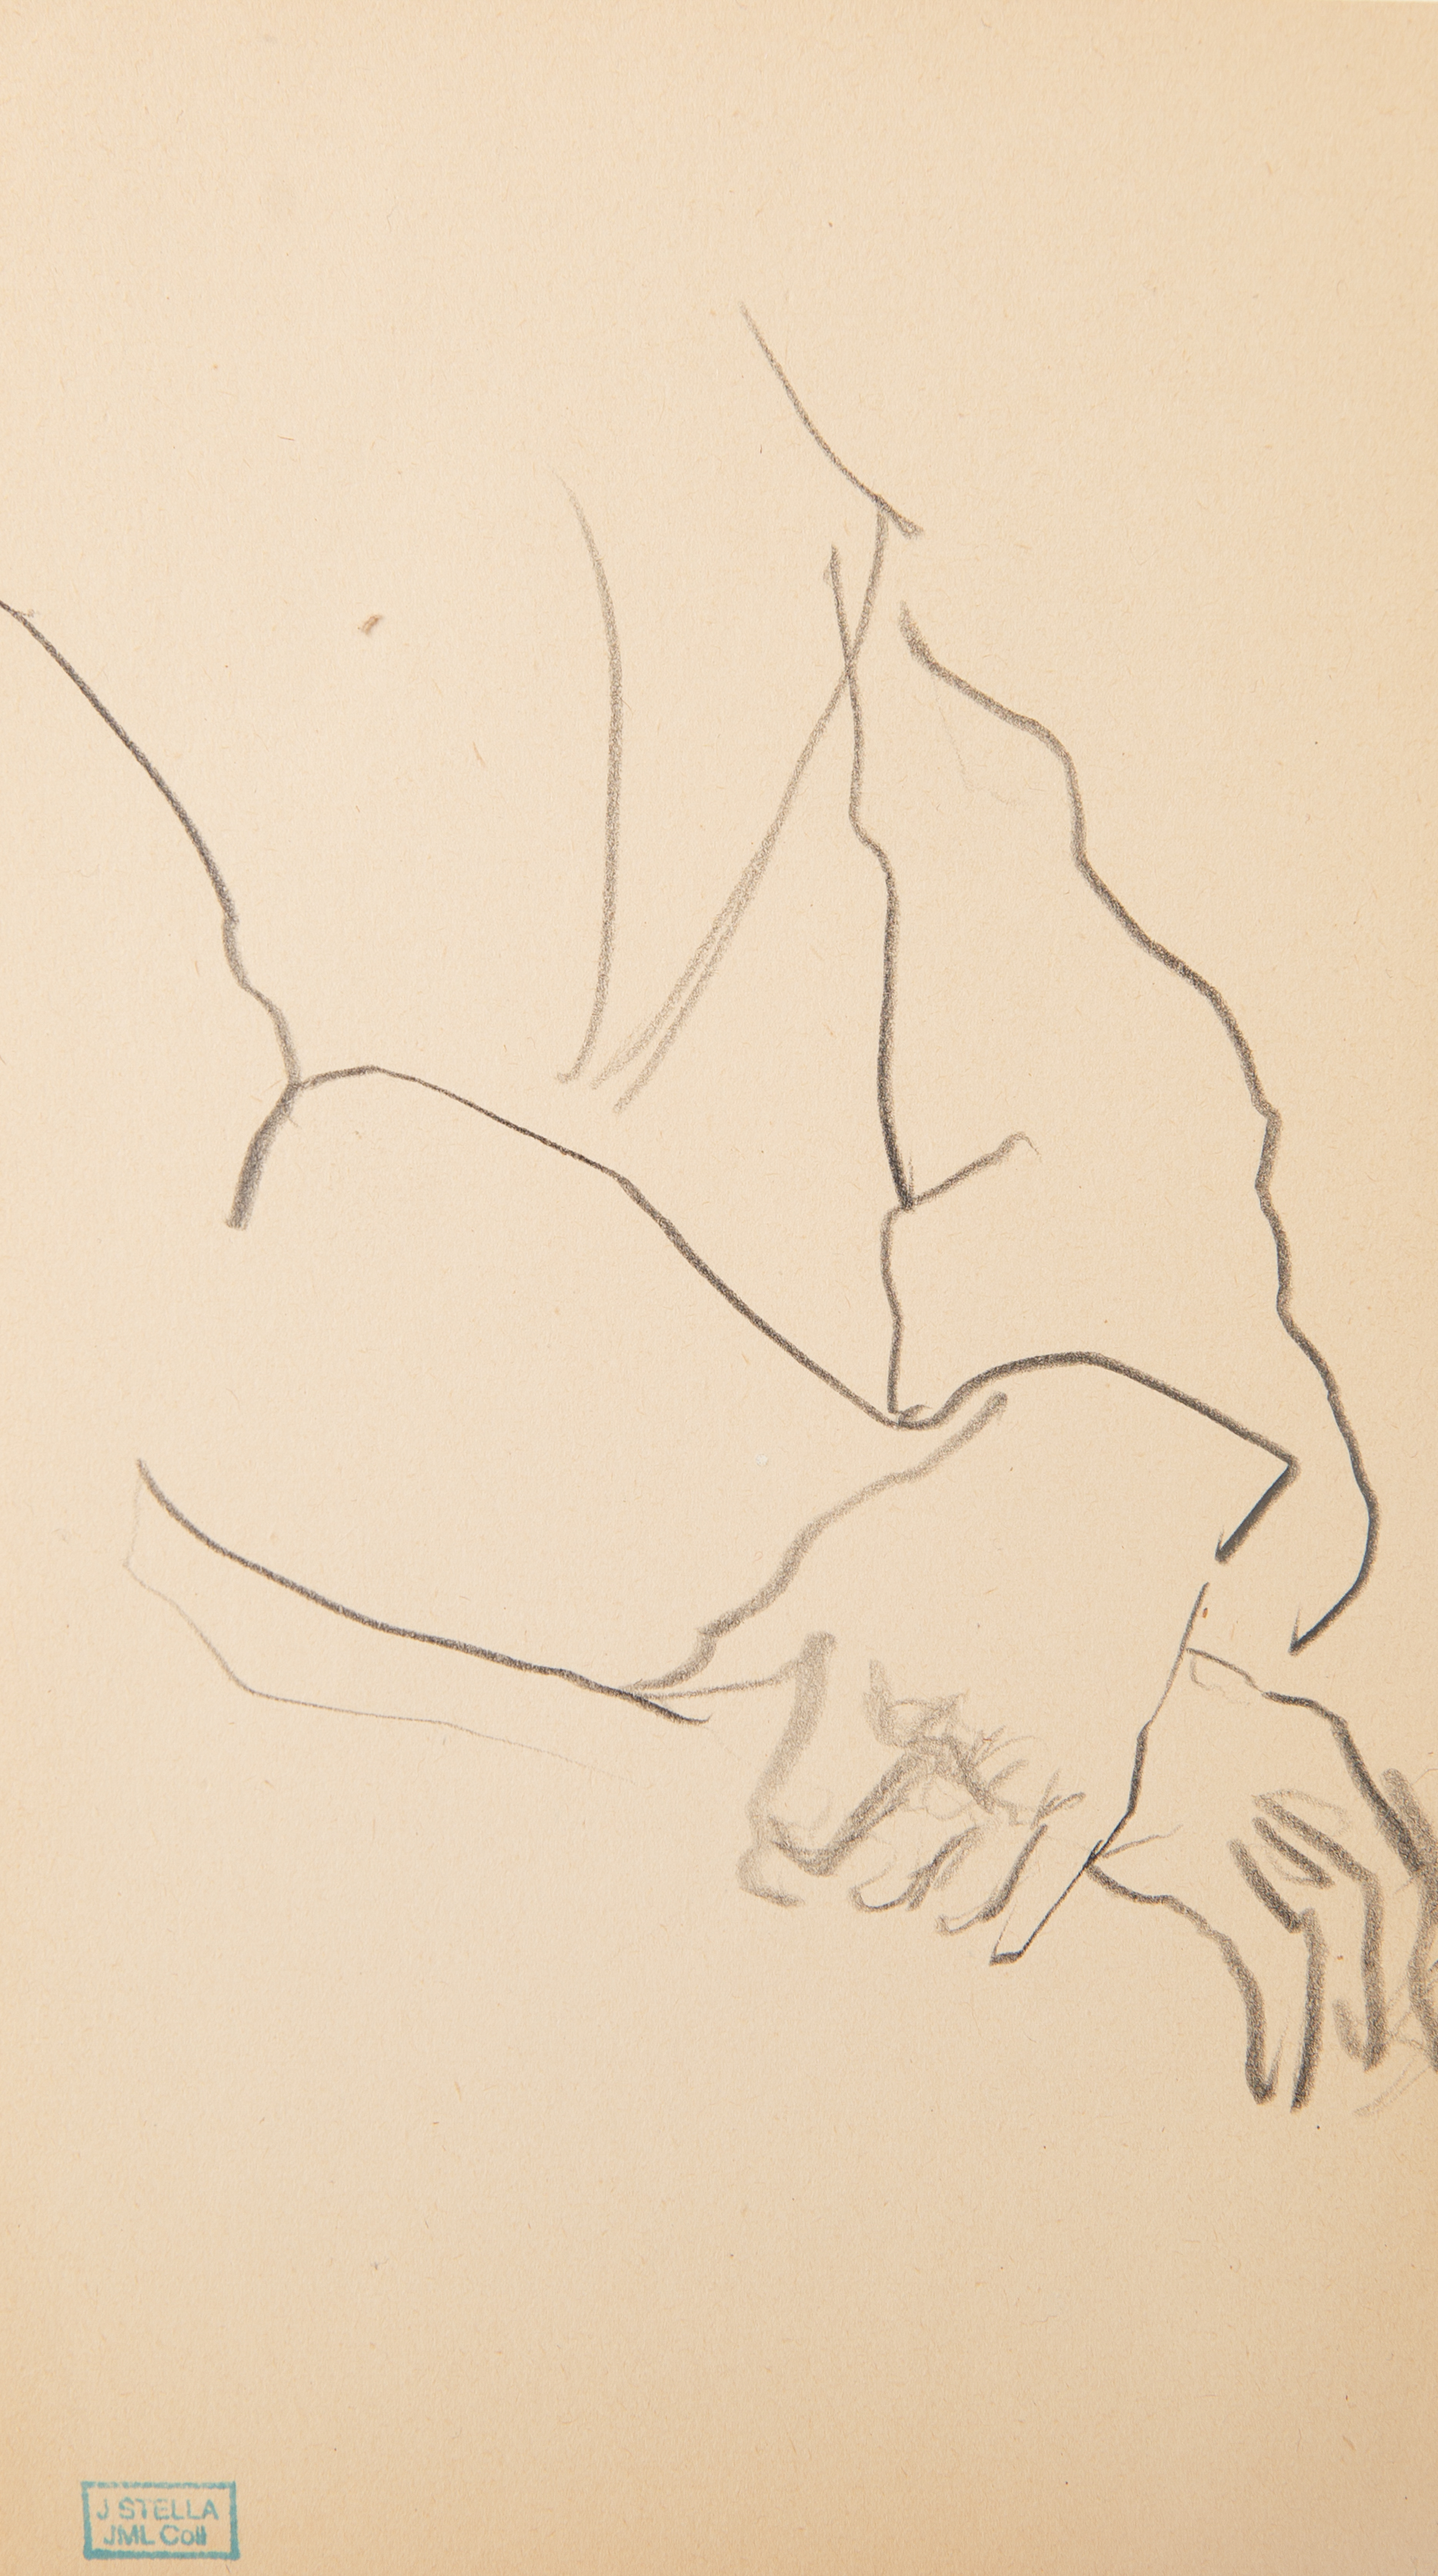 A GROUP OF FOUR DRAWINGS BY JOSEPH STELLA (AMERICAN 1877-1946) - Image 4 of 7